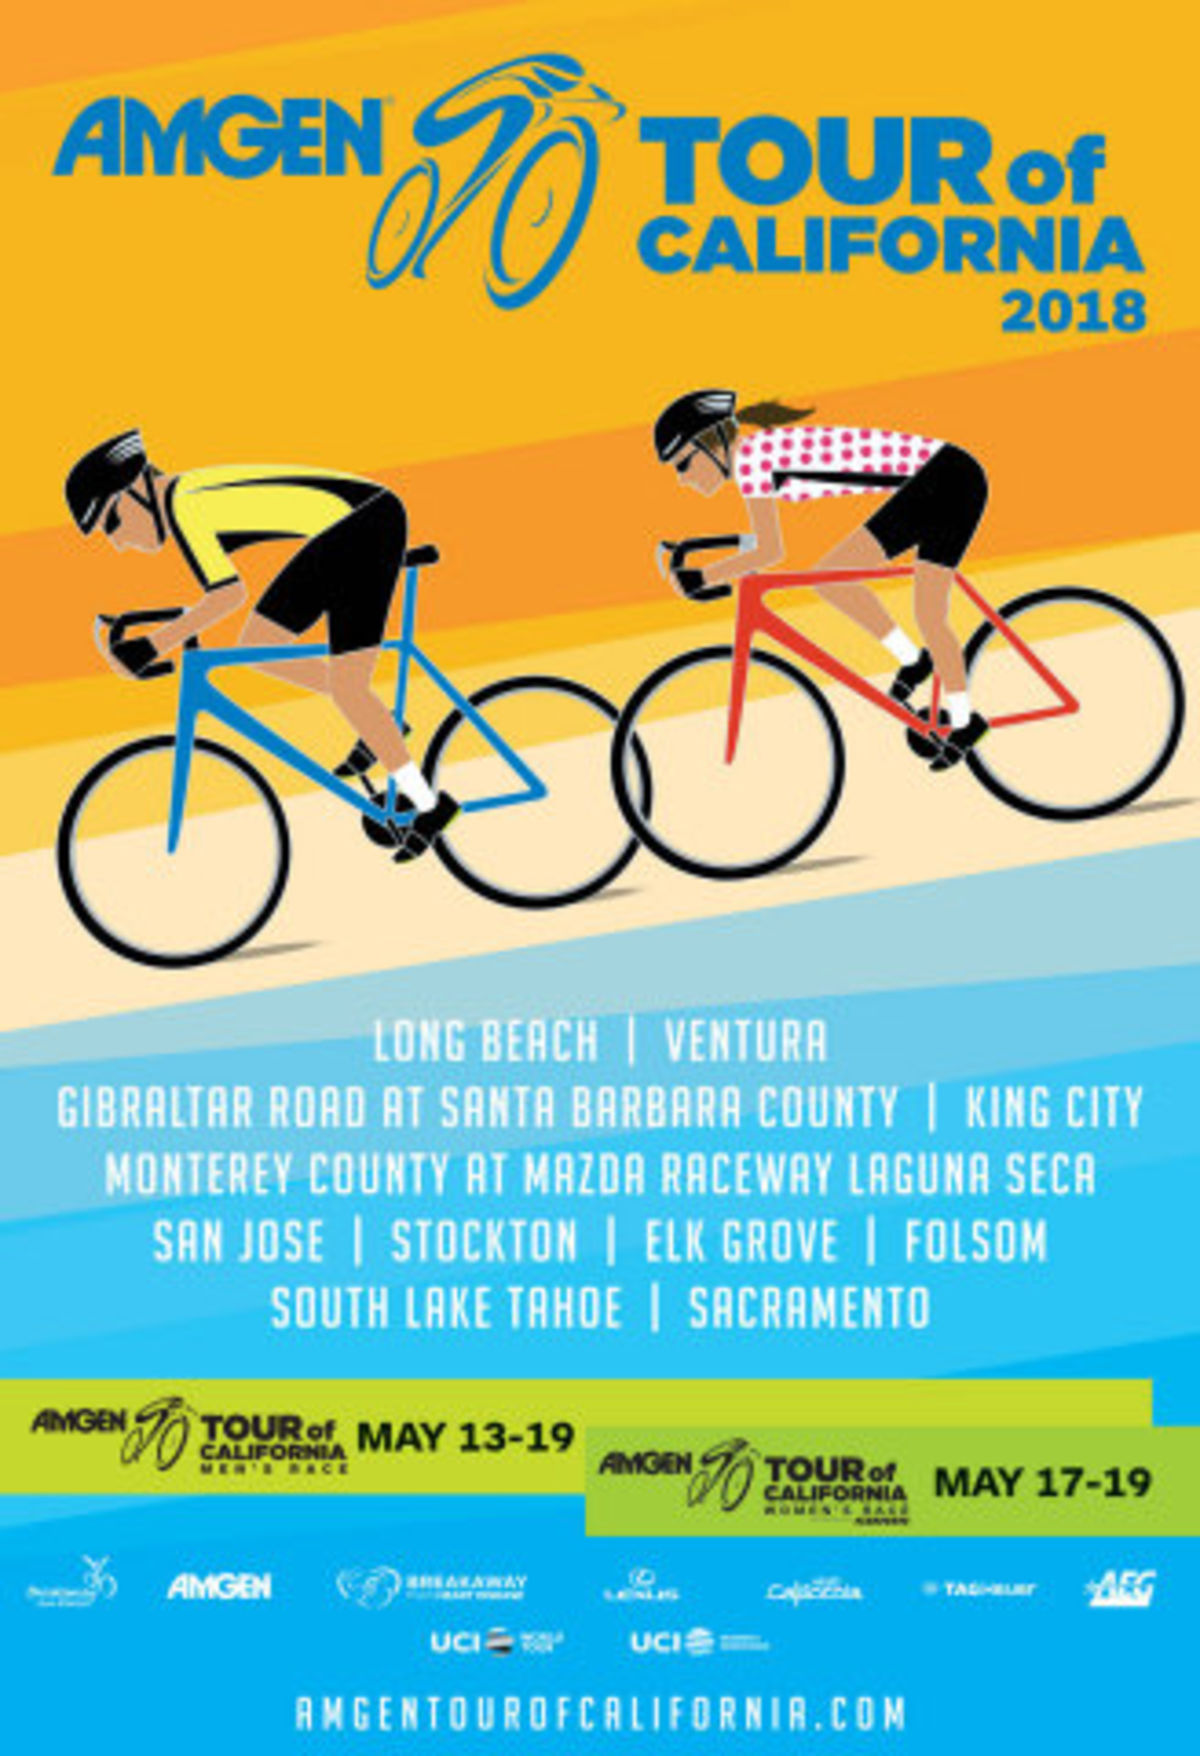 Amgen Tour of California announces 2018 host cities and race schedule for men's and women's races in May.